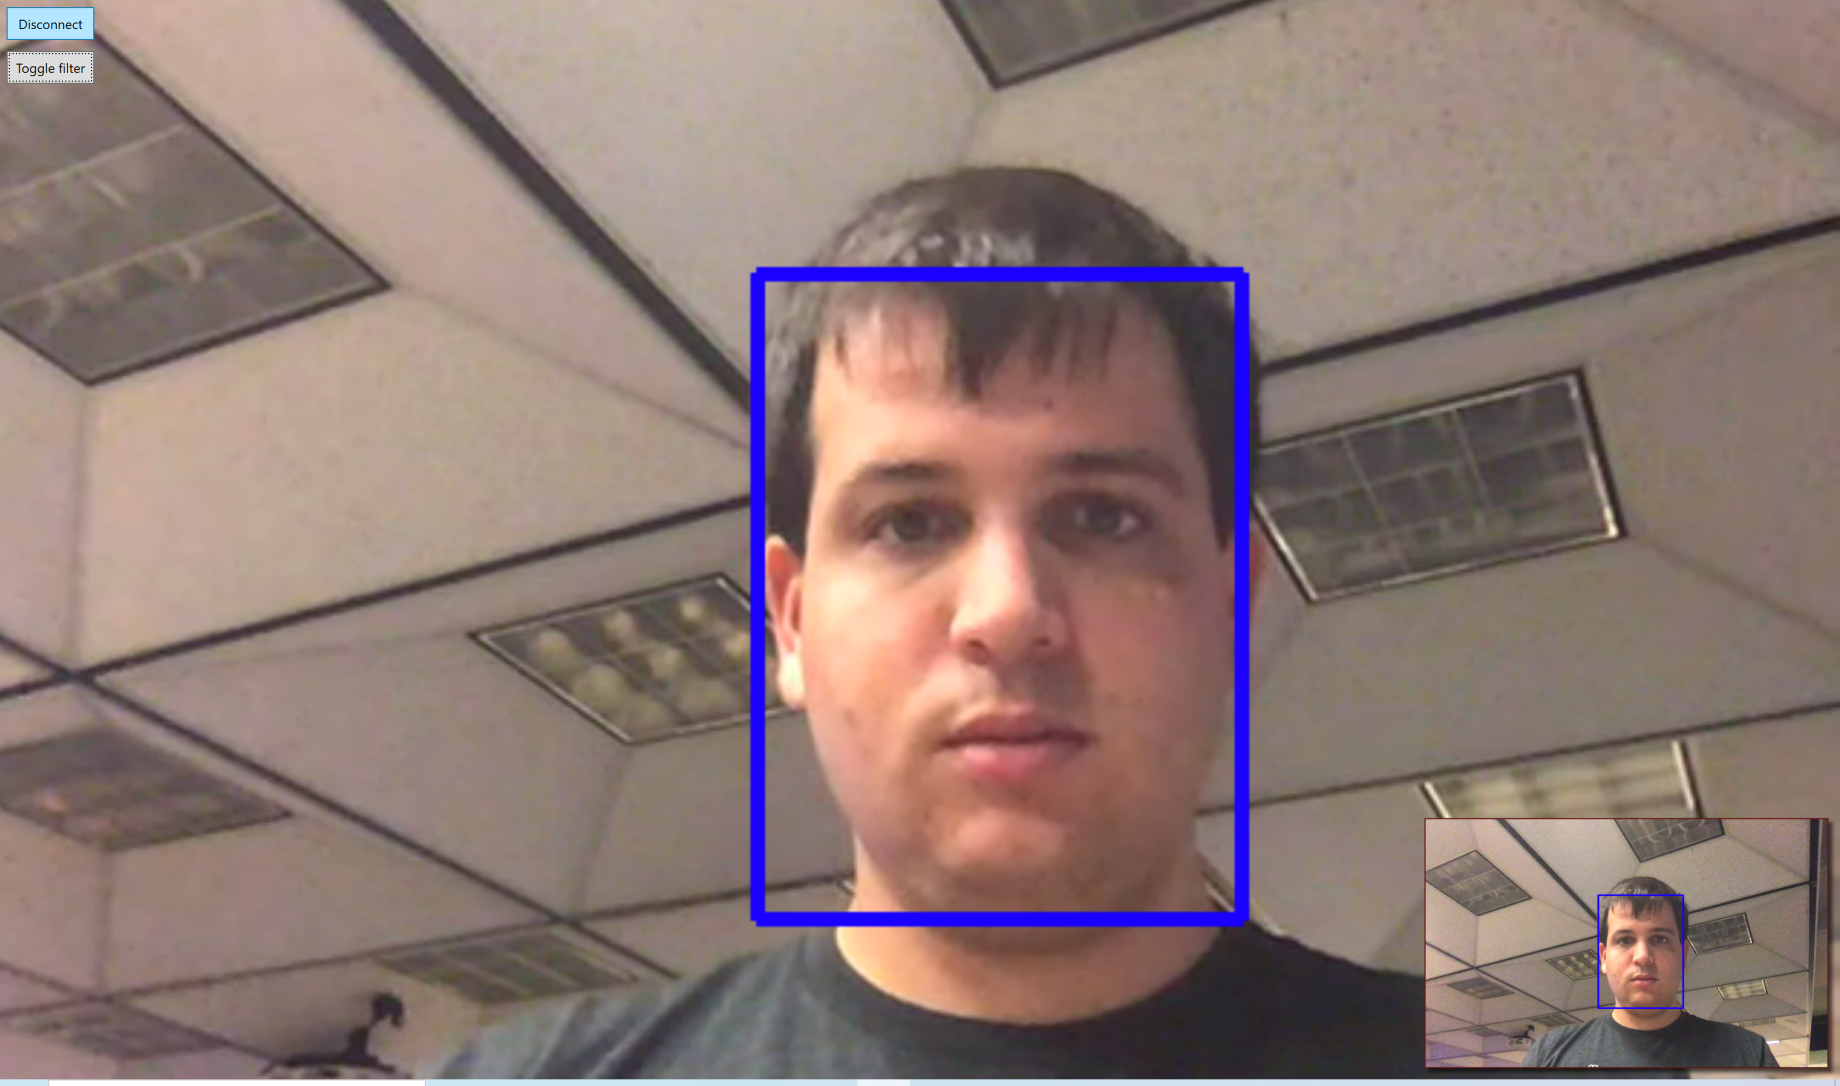 With Face Detection